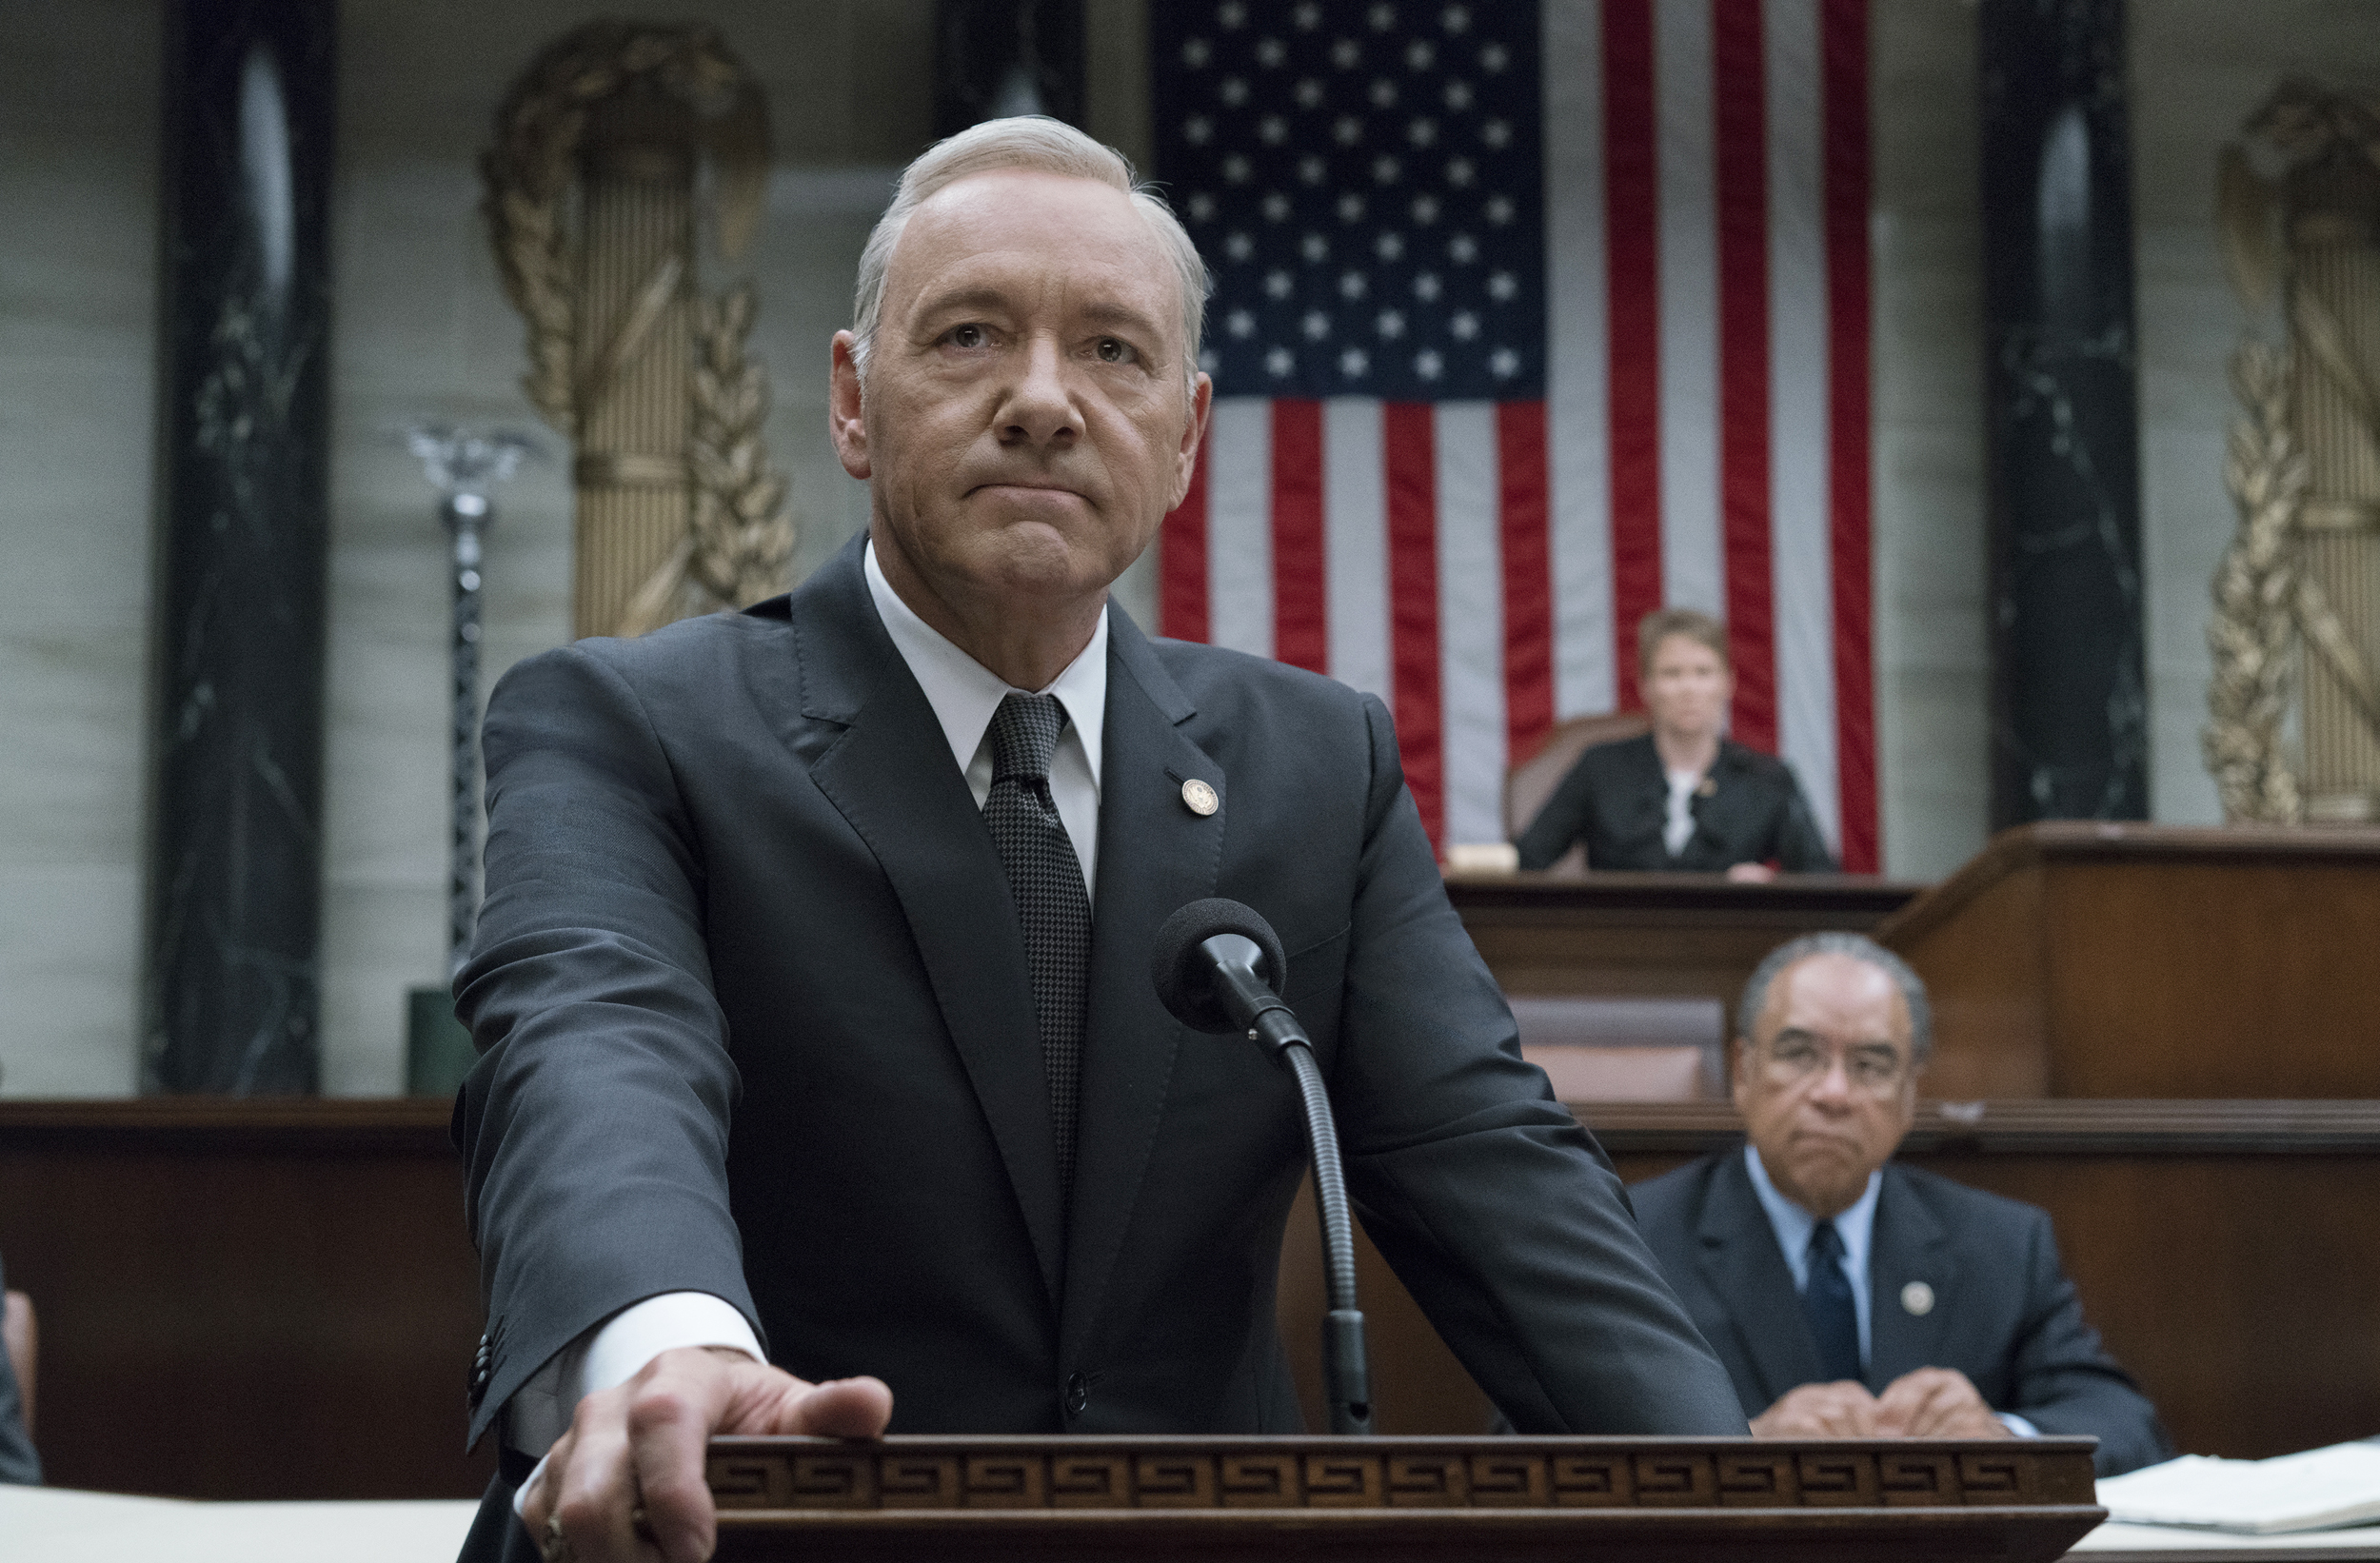 Image: House of Cards Season 5 on Netflix